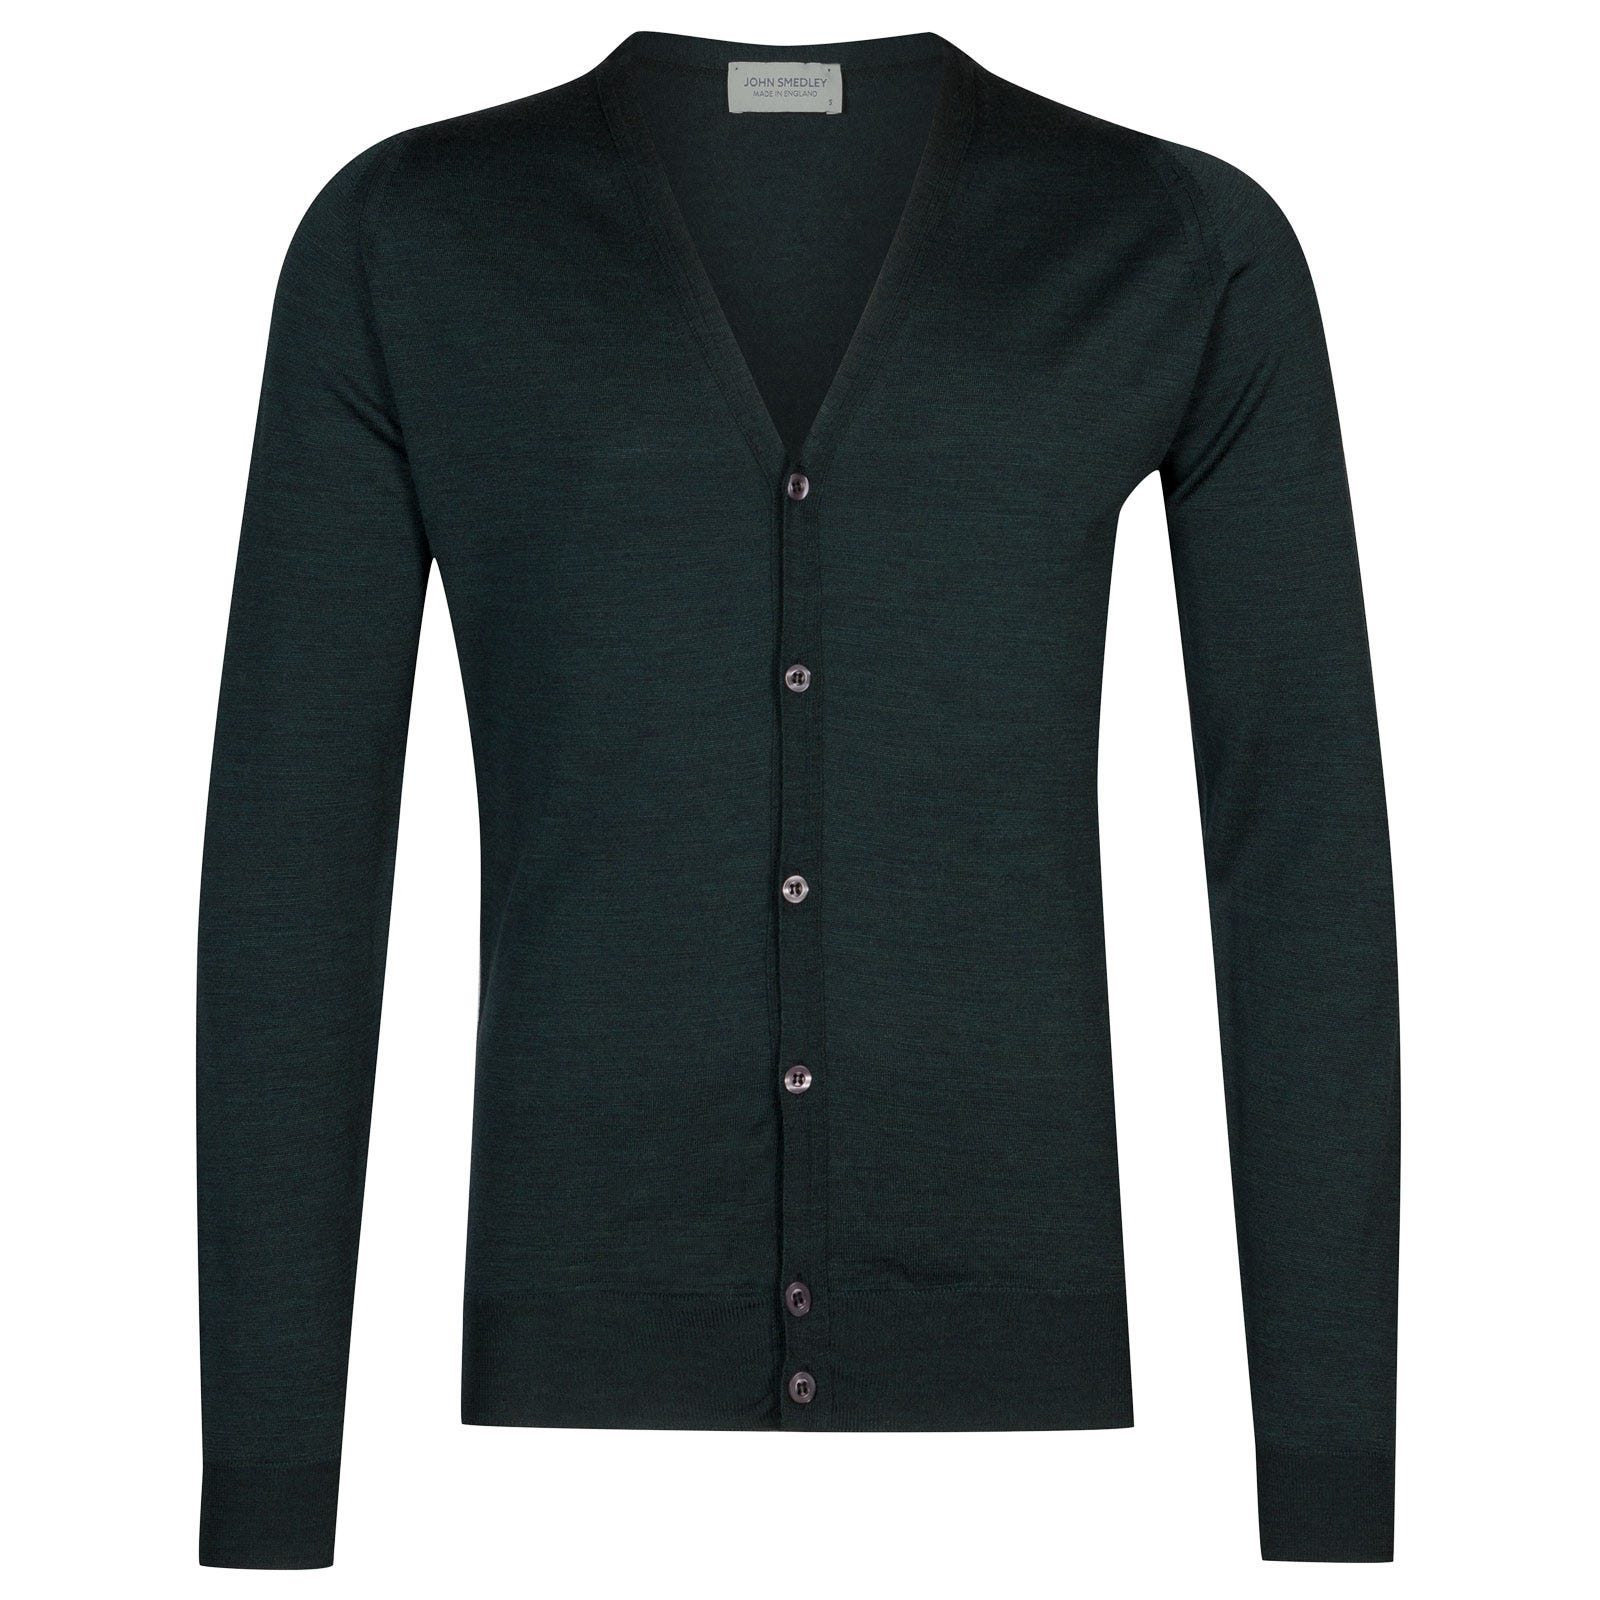 John Smedley petworth Merino Wool Cardigan in Racing Green-XL